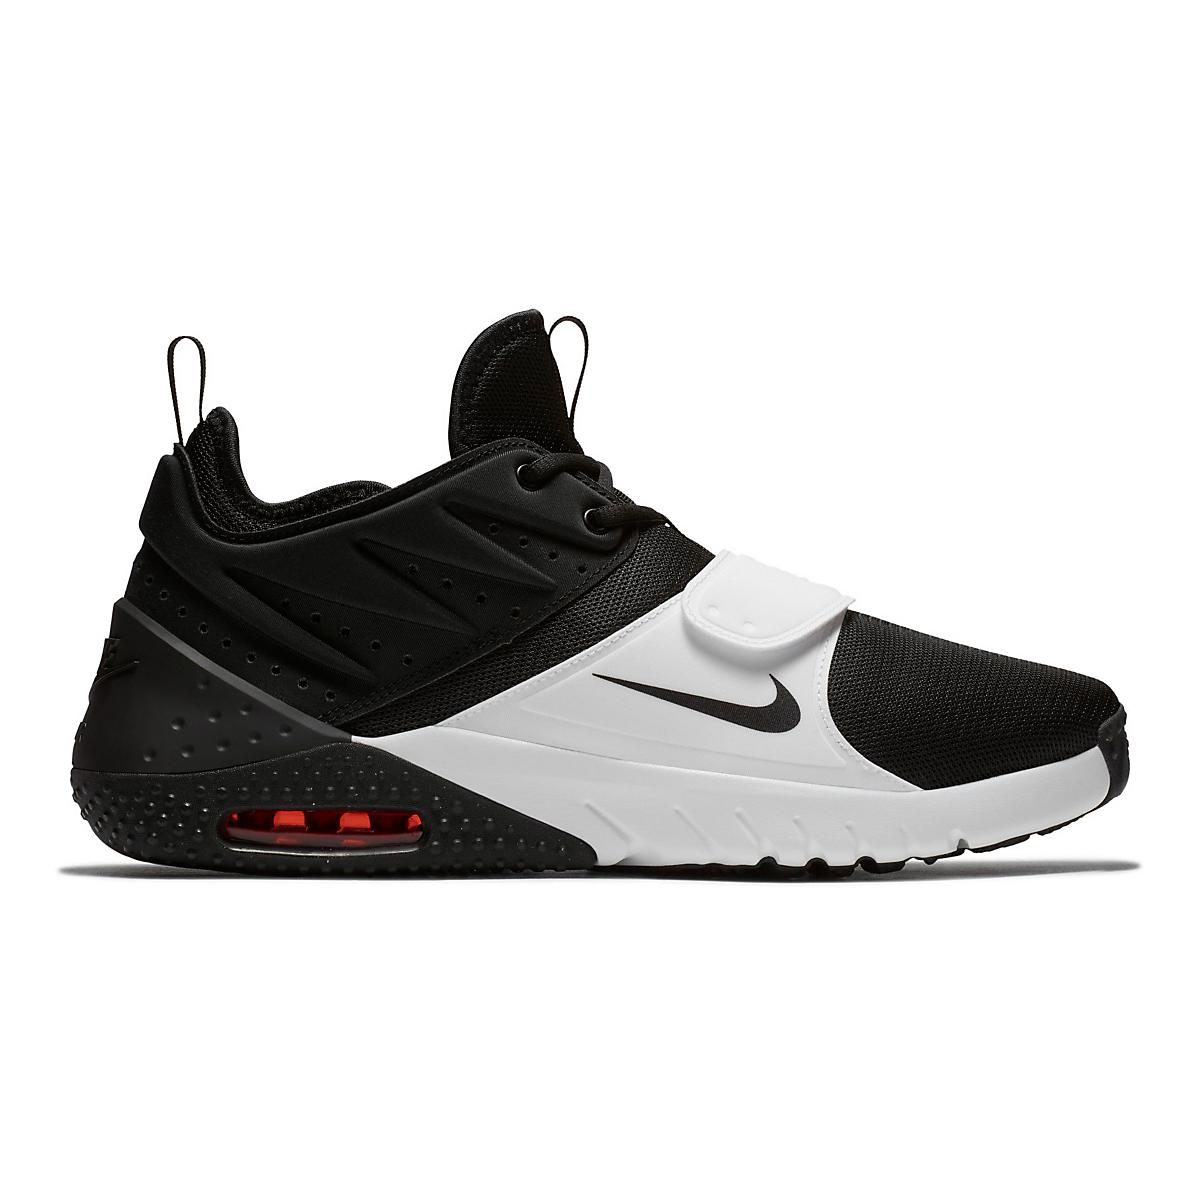 detailed look 5c6e5 899f9 ... denmark mens nike air max trainer 1 cross training shoe at road runner  sports eec79 93cbf